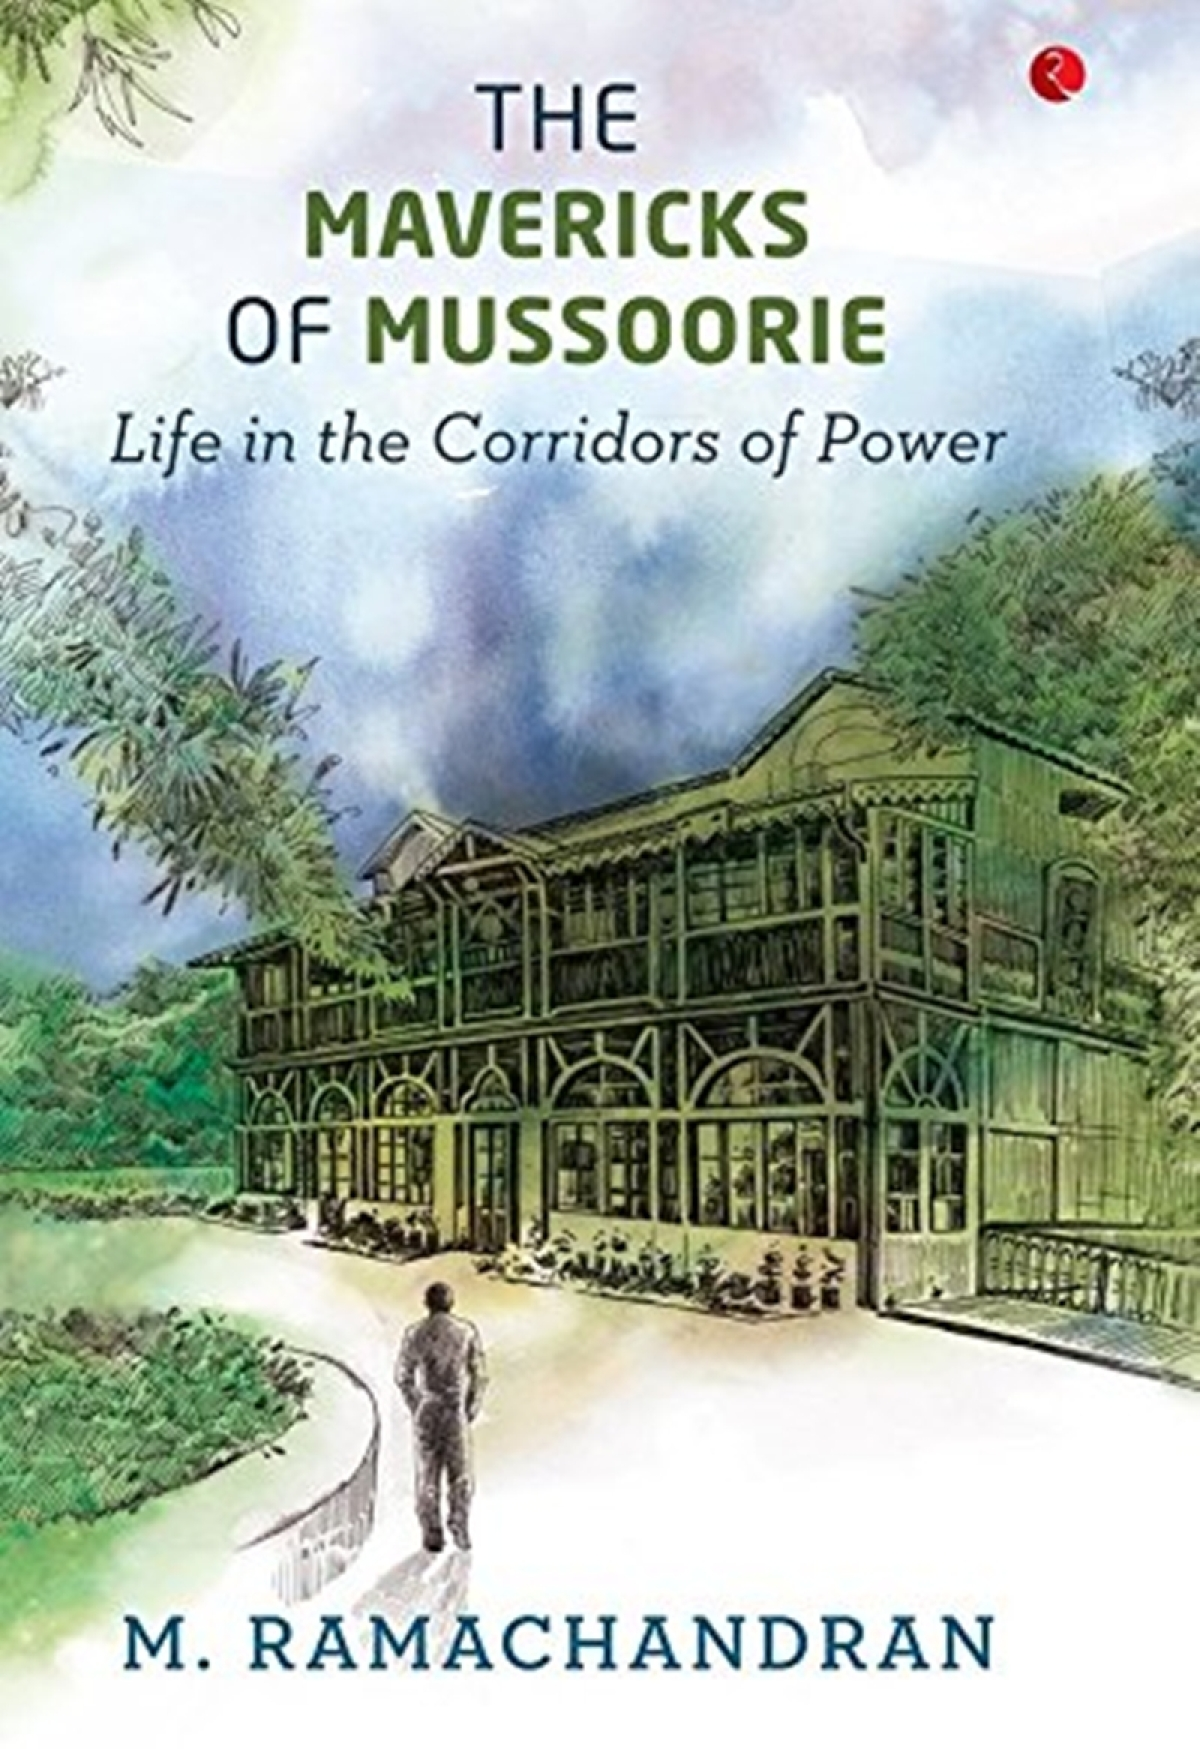 The Mavericks of Mussoorie: Life in the Corridors of Power by M. Ramachandran- Review